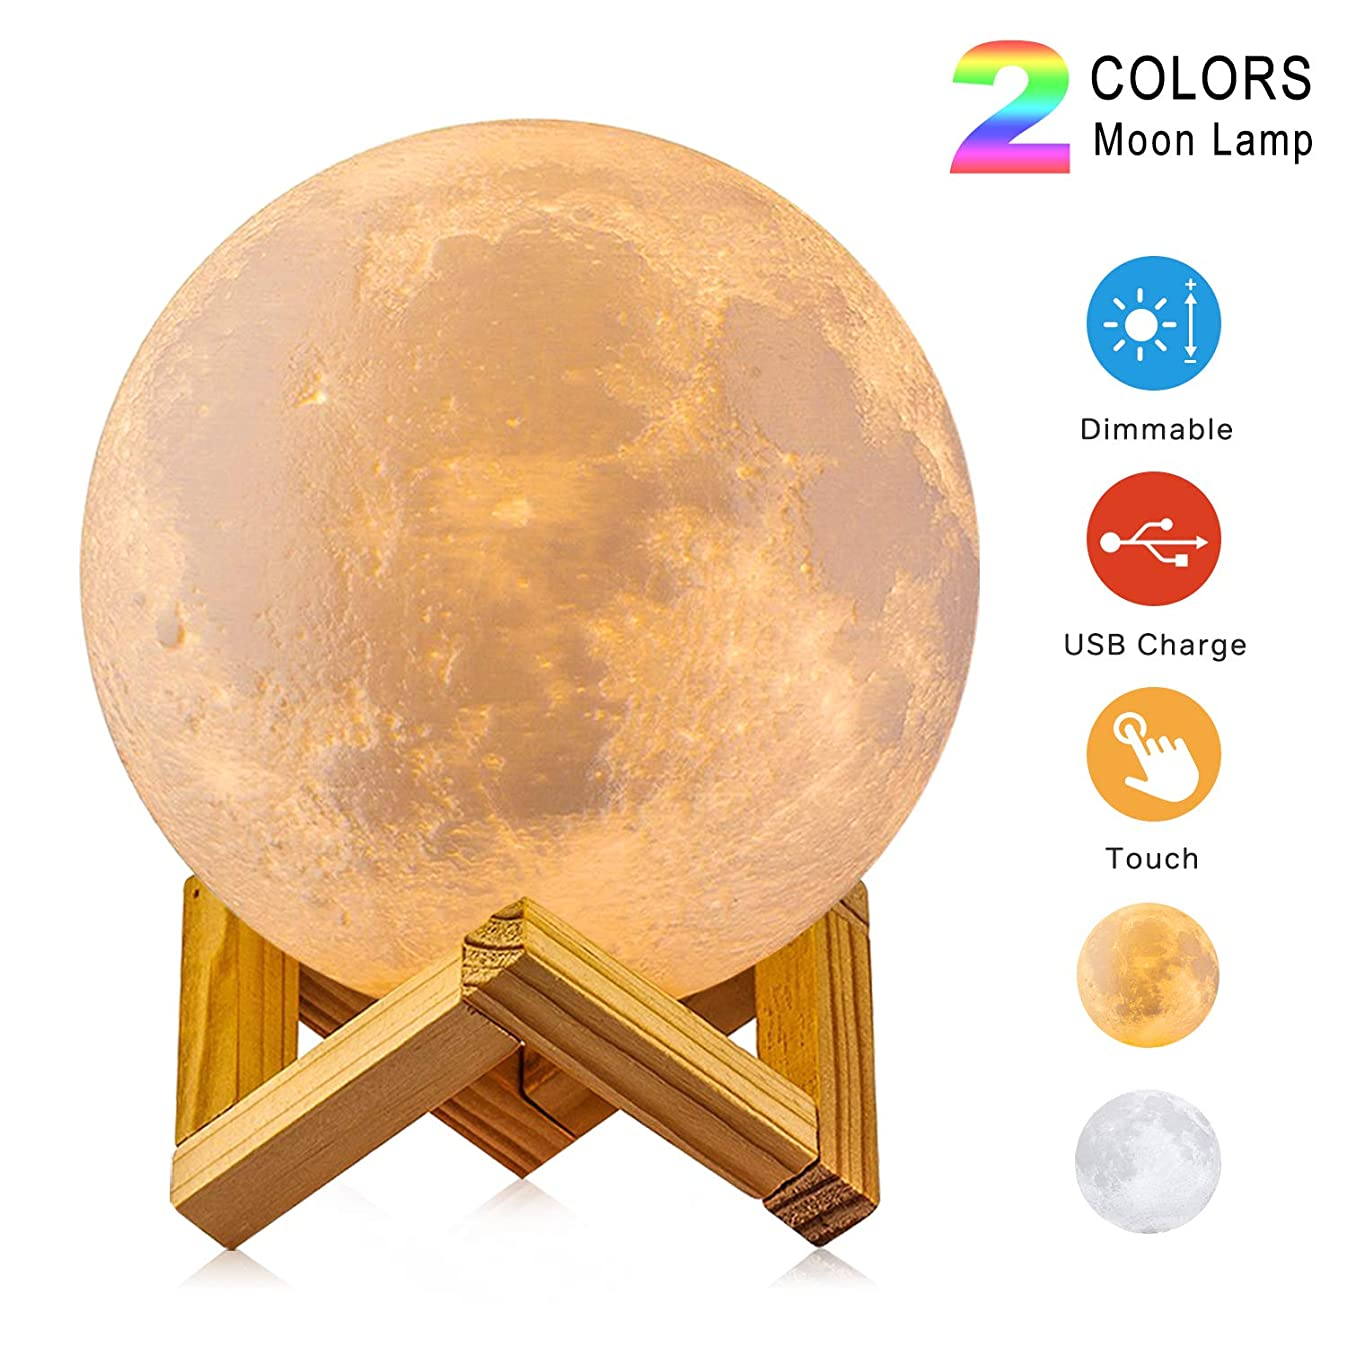 Moon Lamp, 3D Print LED Two Colors, USB Rechargeable Lunar Night Light & Touch Control Dimmable Moon Light Decor with Stand for Baby Kids Lover Birthday Fathers Day Gifts (Diameter 3.9 inch)